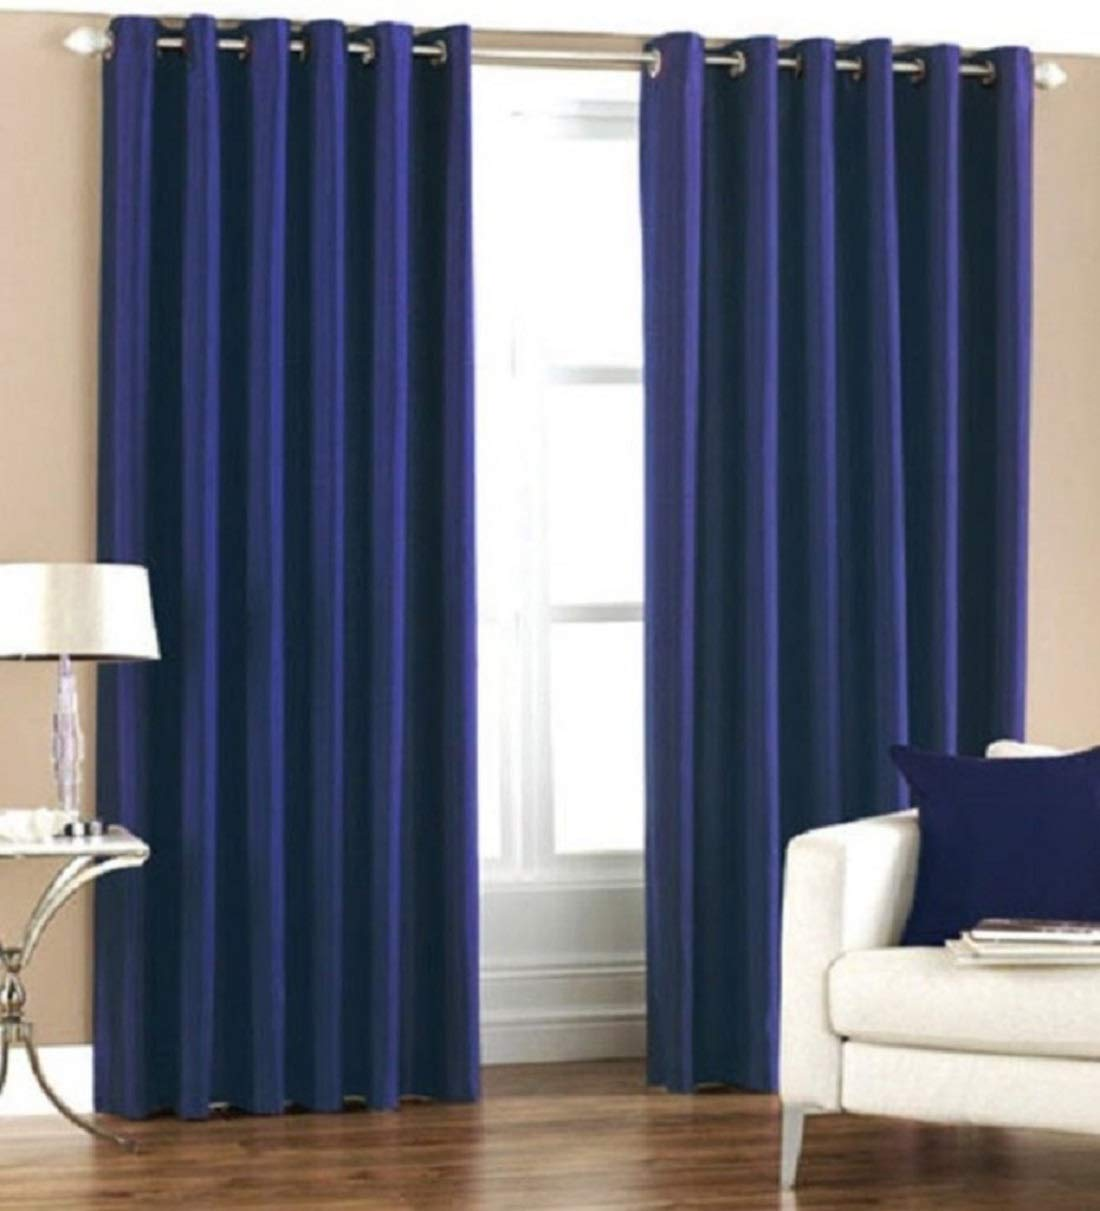 Set of 2 curtains with Faux Silk and Premium Quality